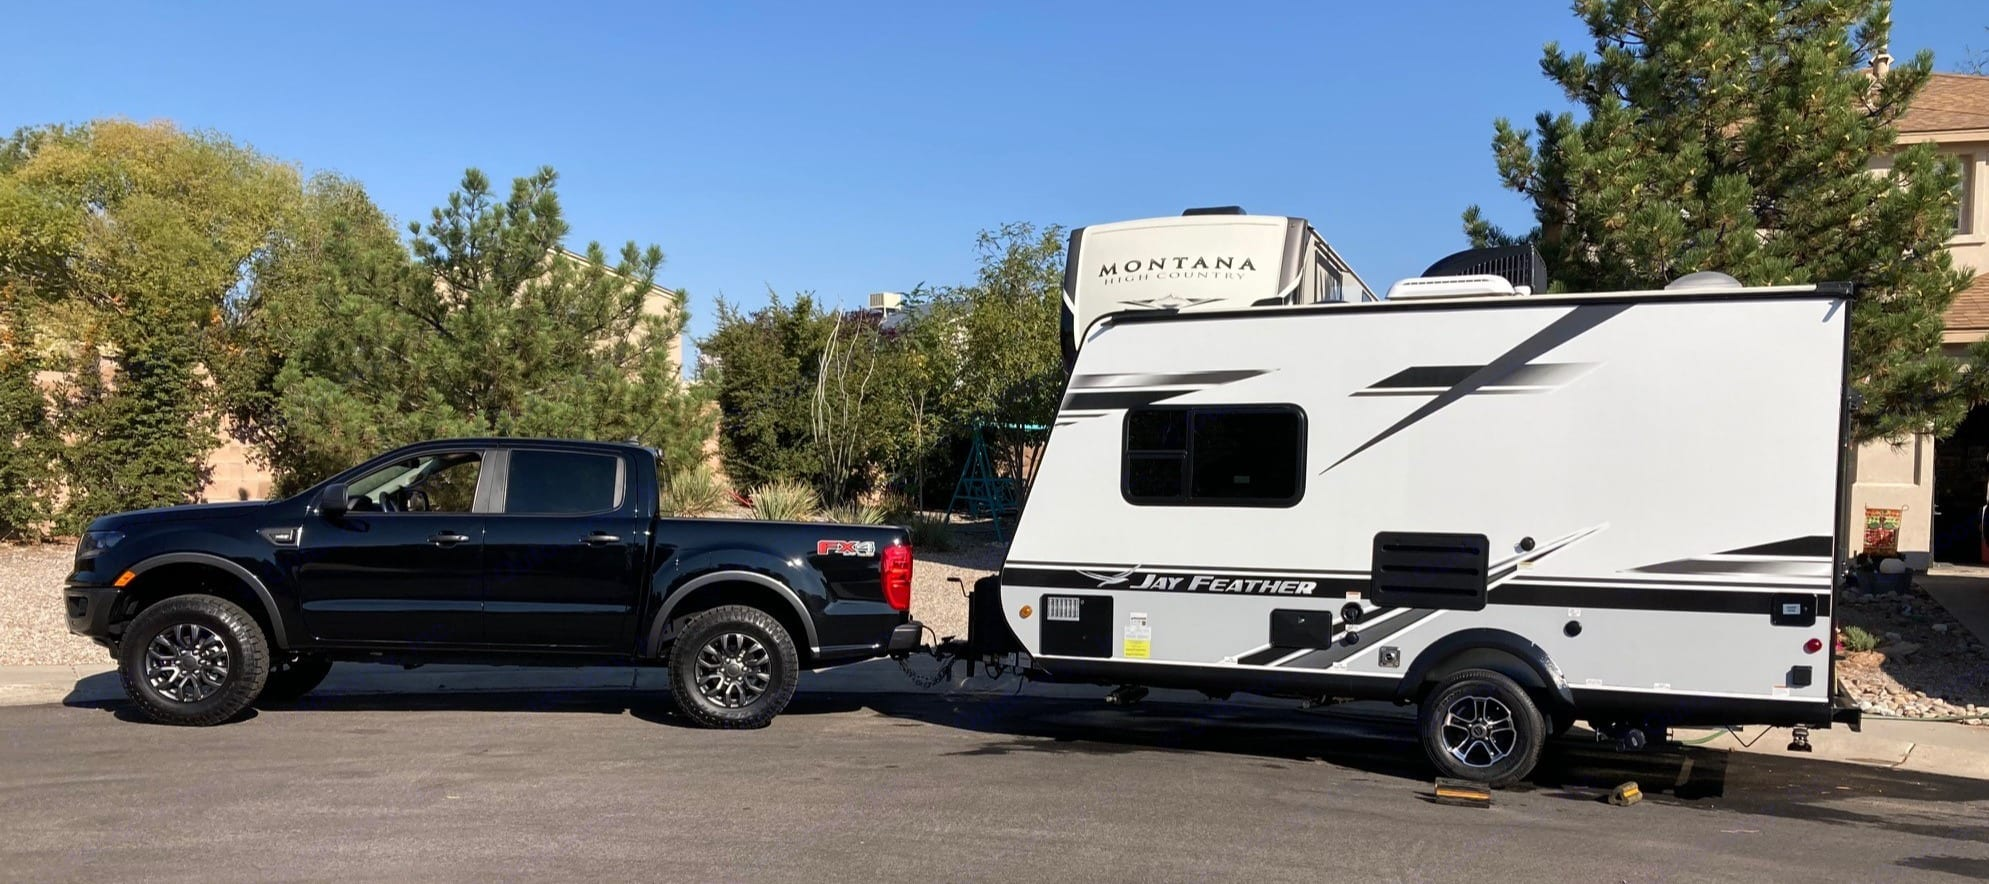 Perfect size for smaller trucks and SUV's with 4000lb+ tow rating. Jayco Jay Feather X17Z Hybrid 2021